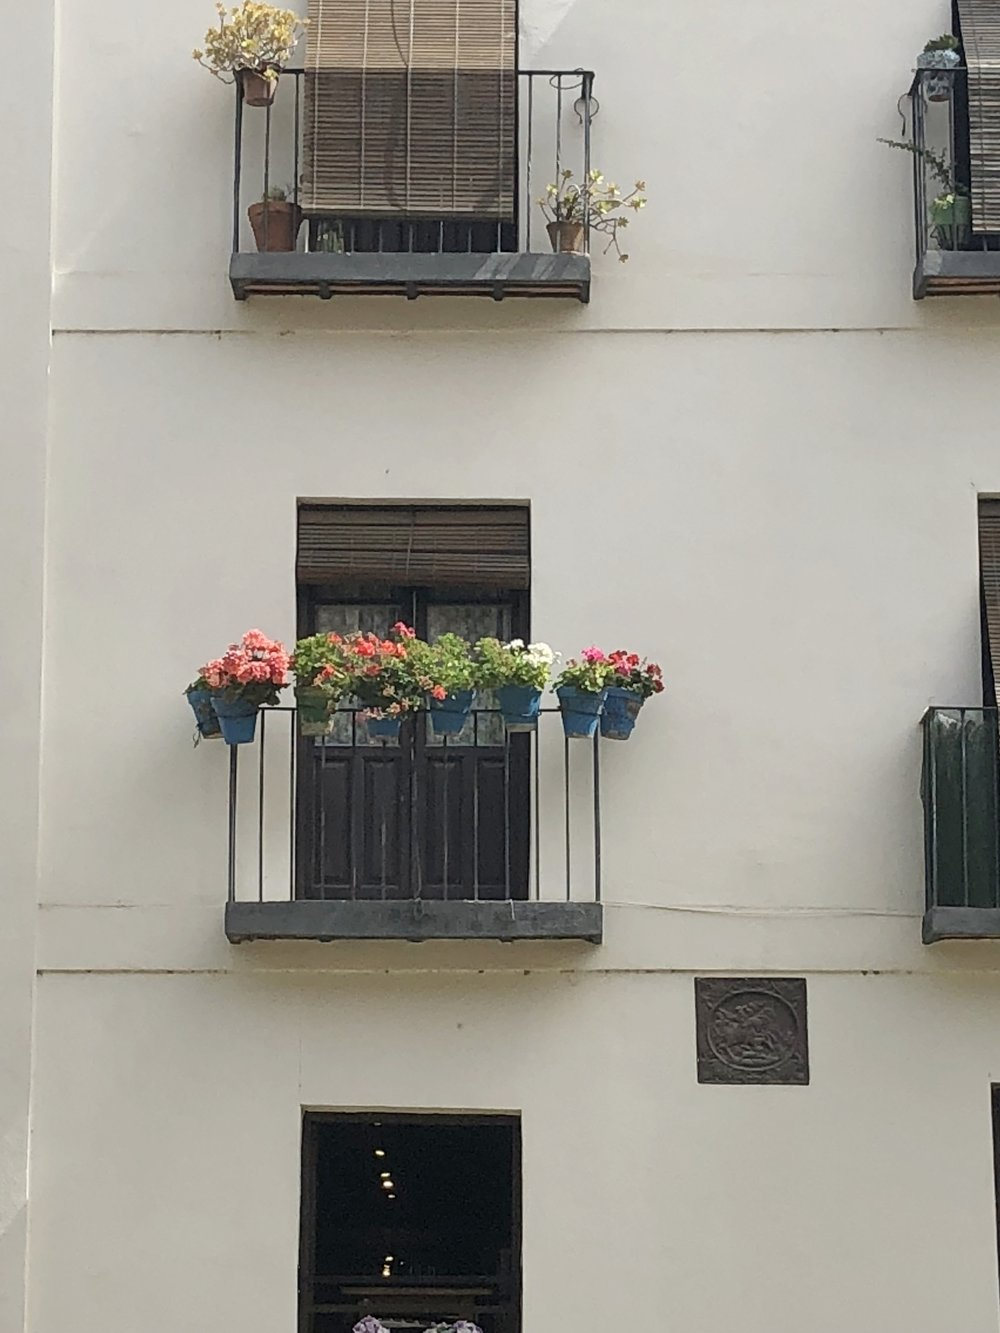 I'm a big fan of the blue flower pots all over Spain and Greece :)